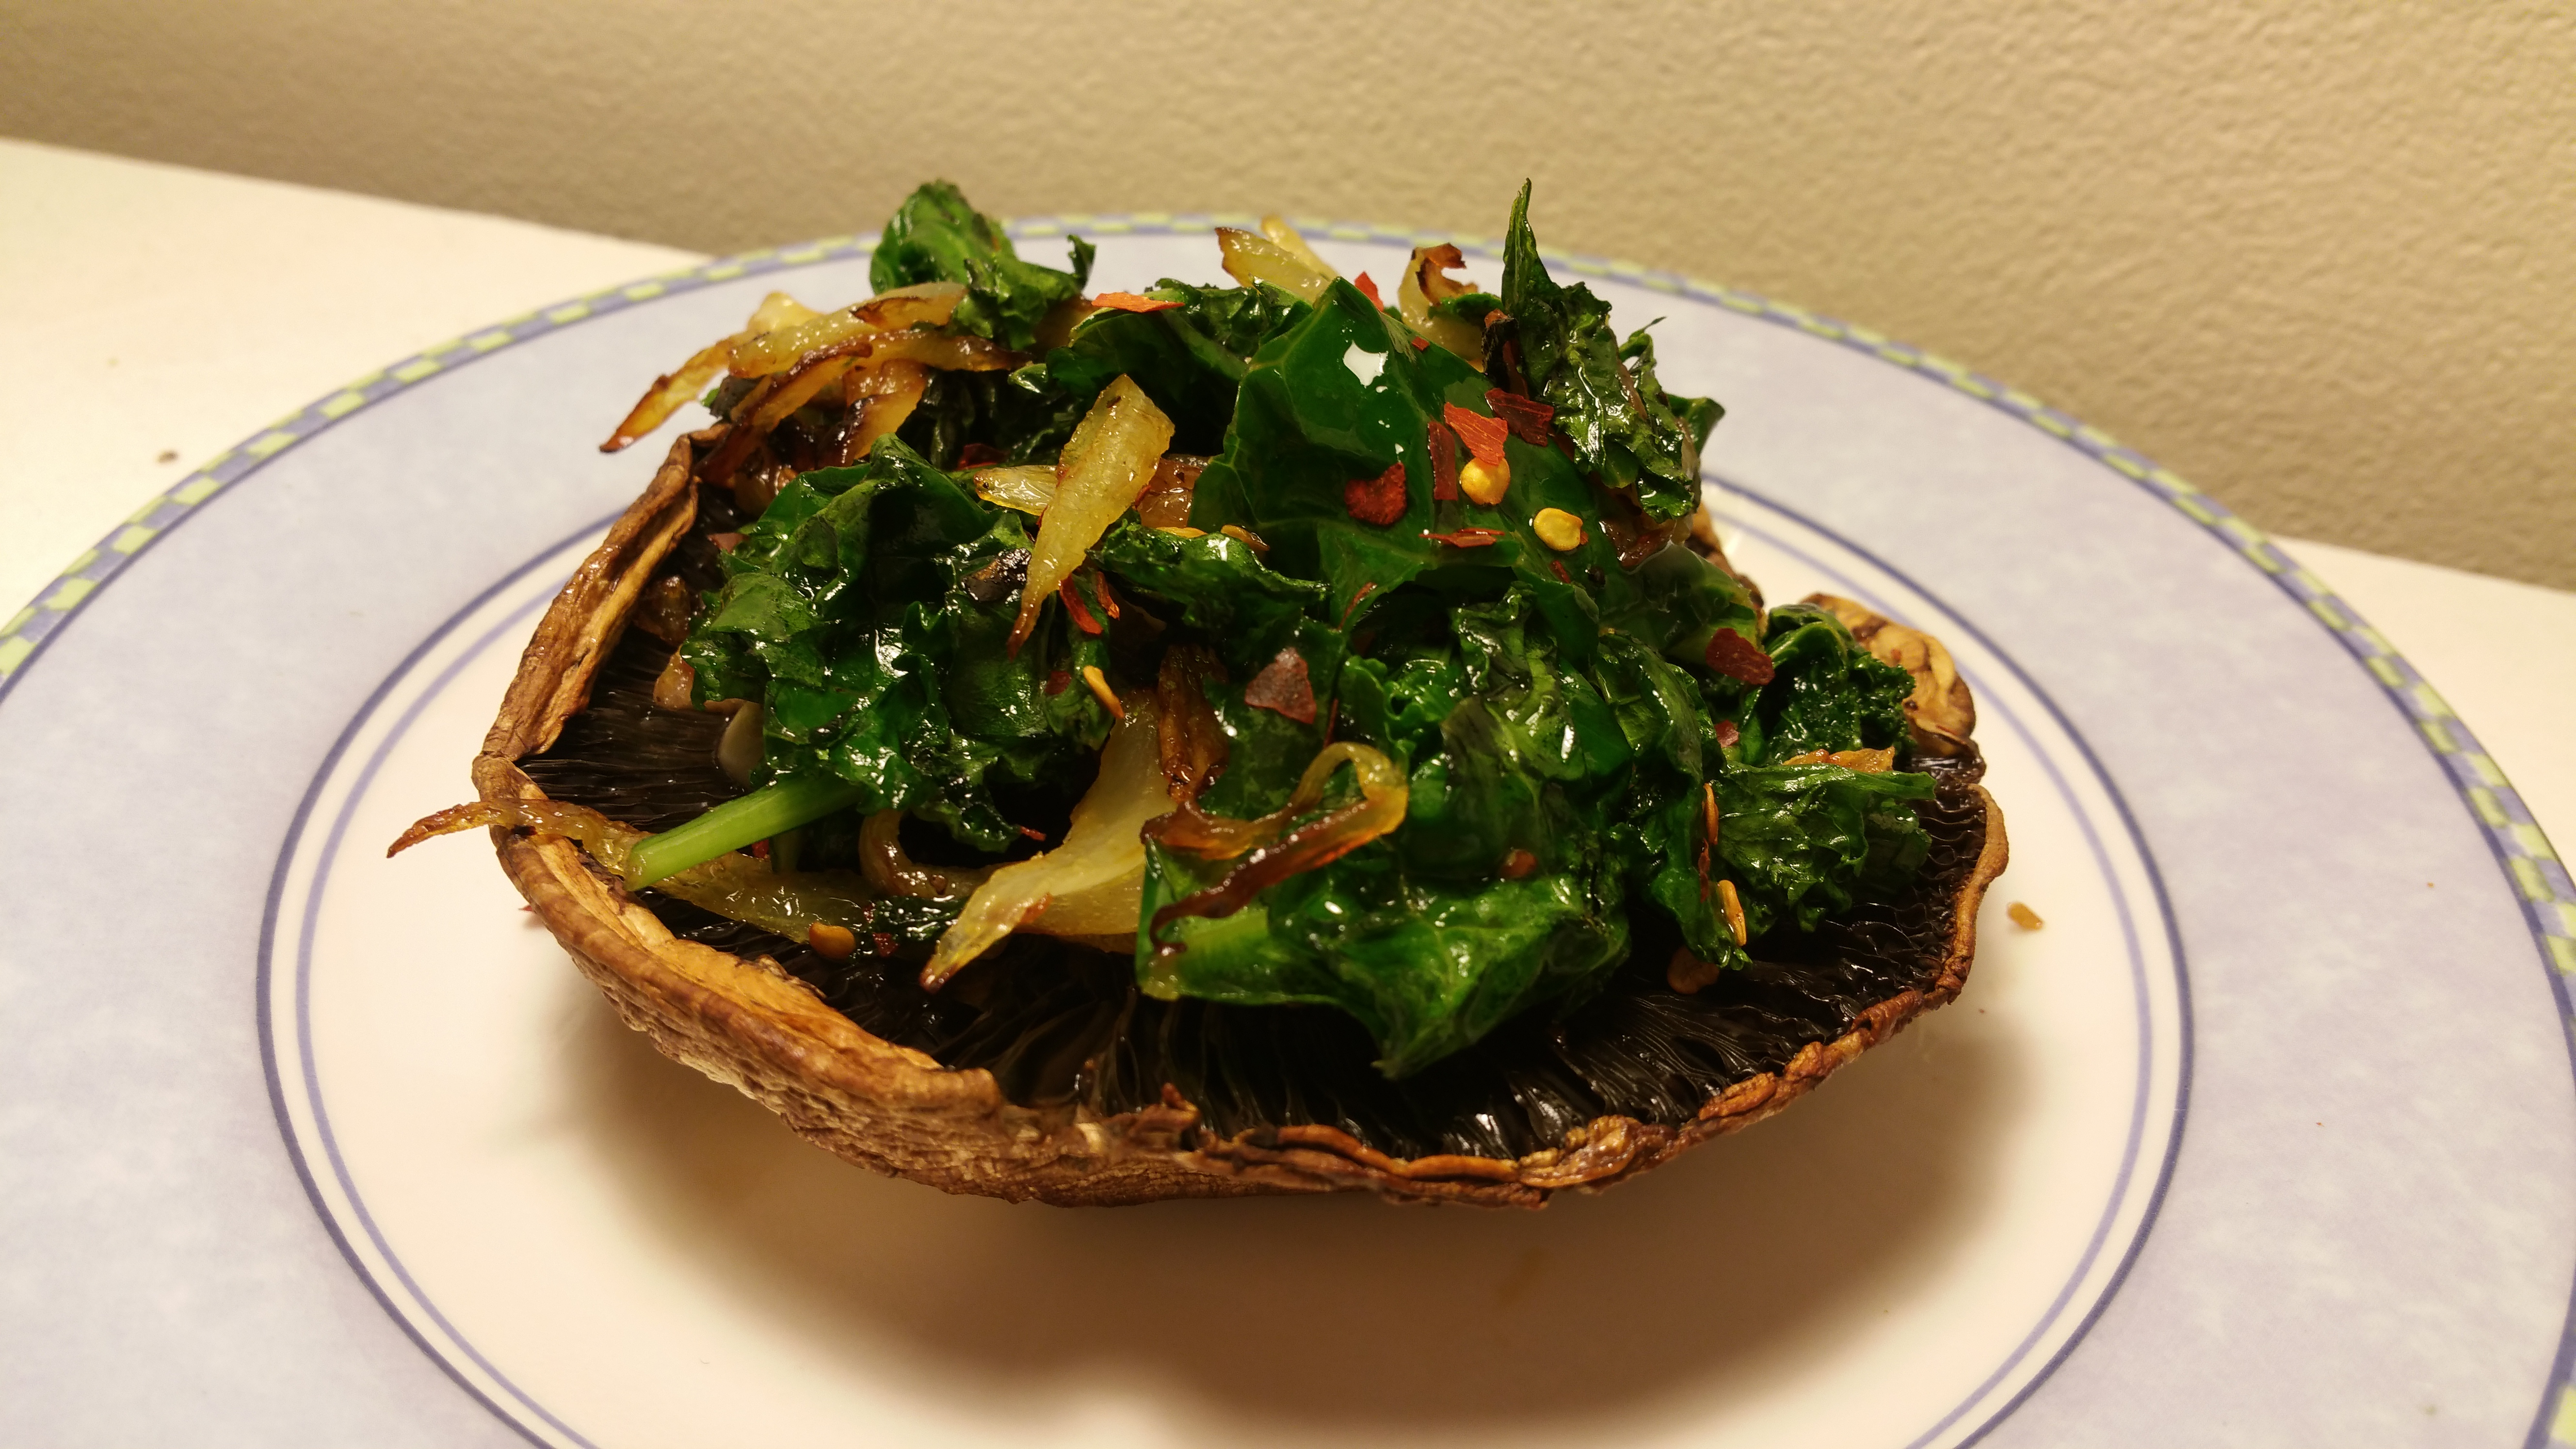 portabella mushroom with kale and onions